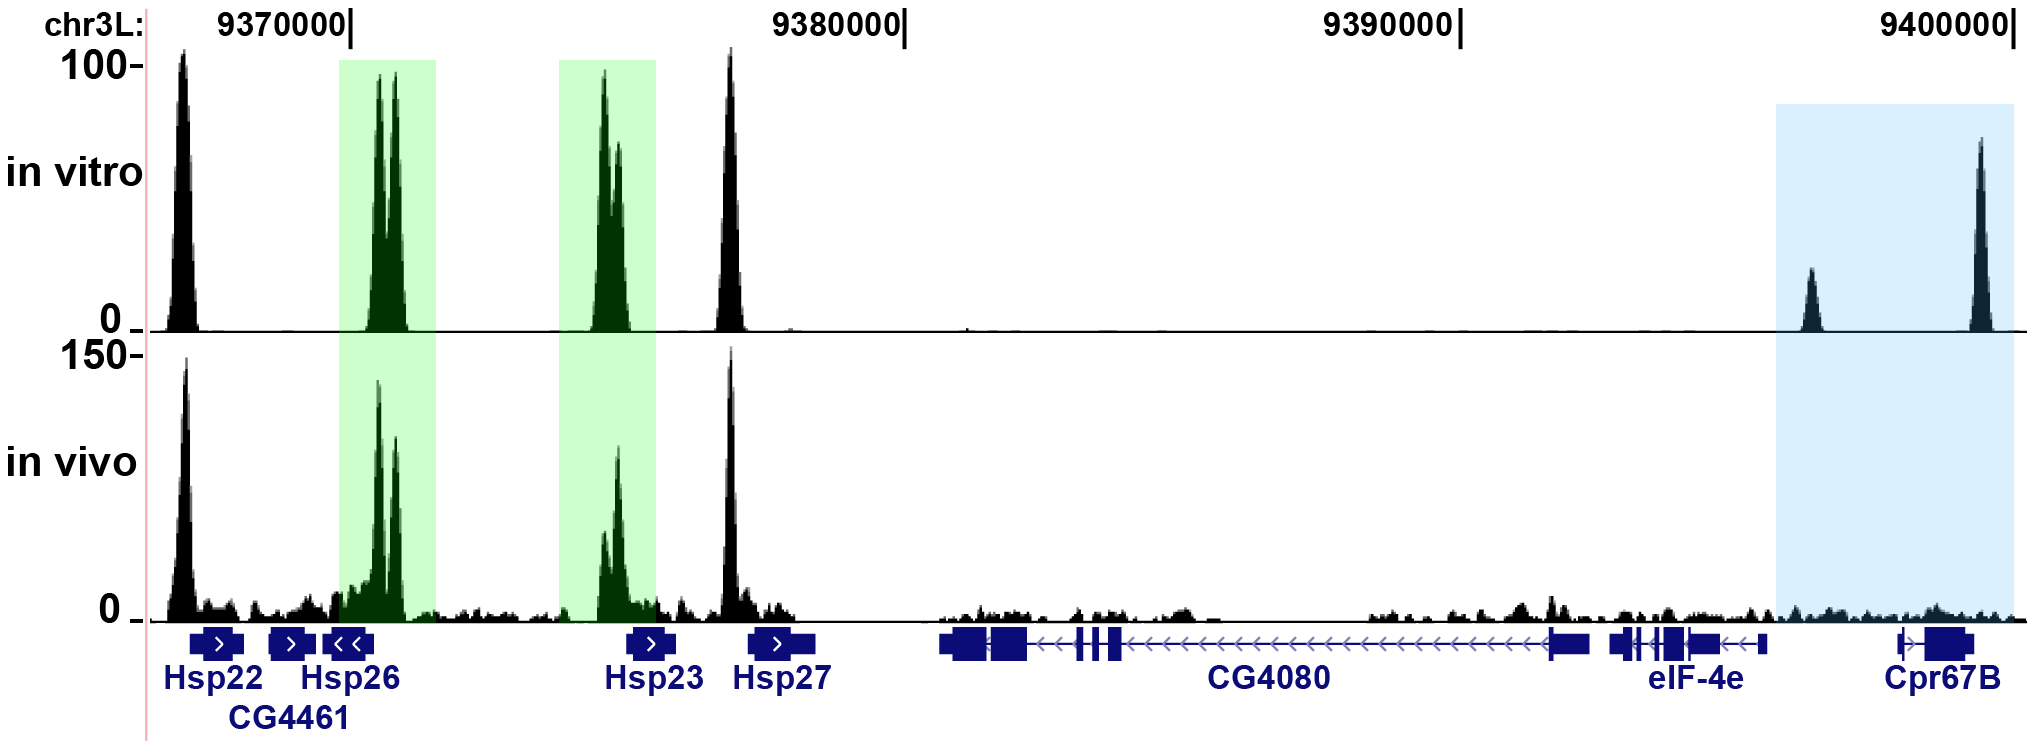 In vitro binding reveals potential HSF binding sites.